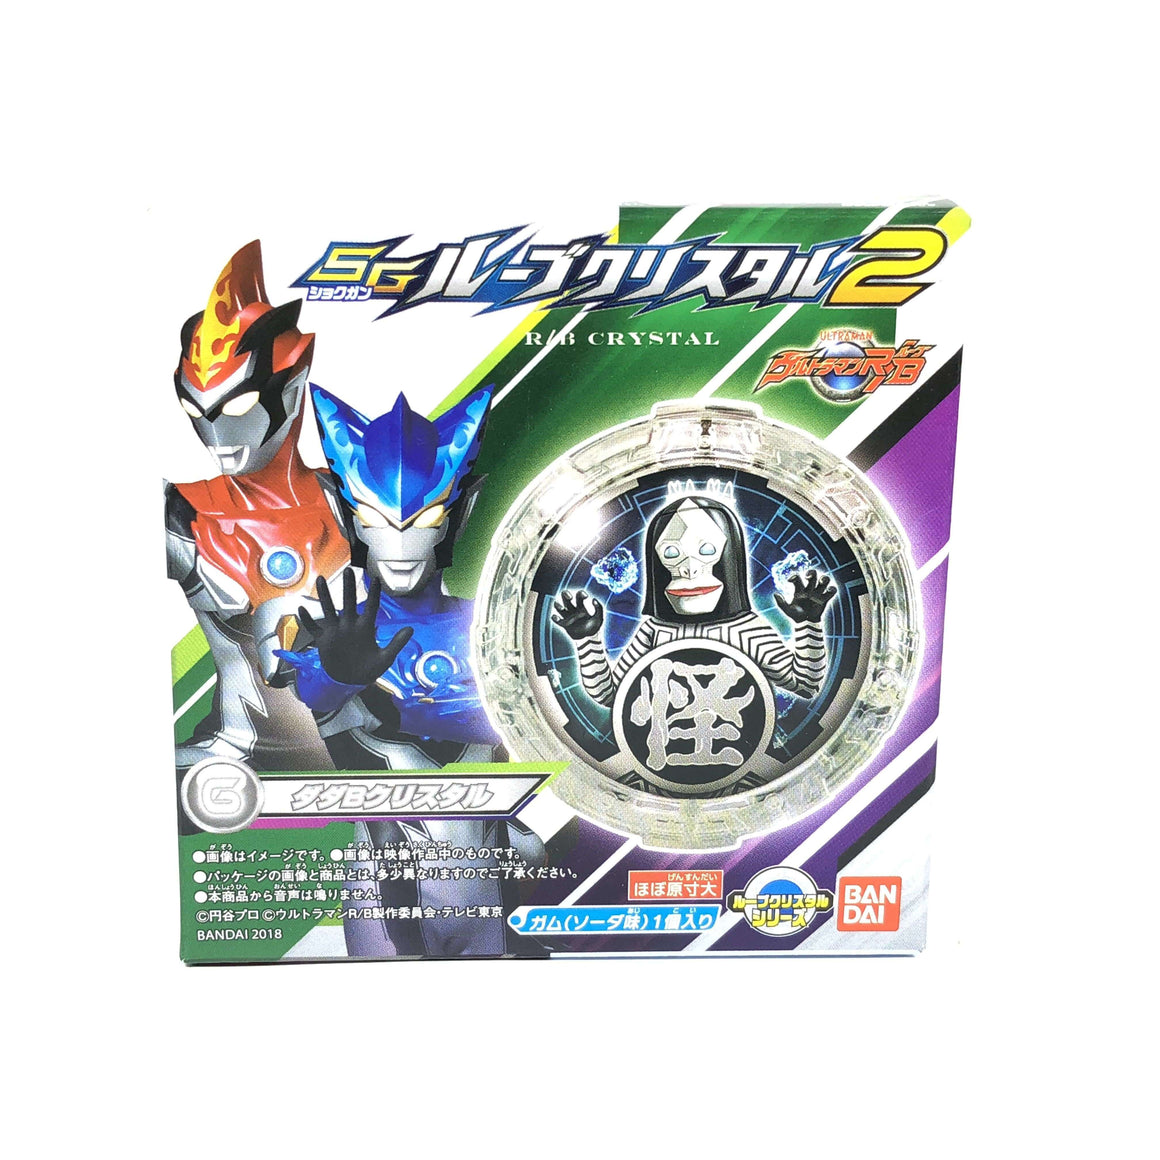 CSTOYS INTERNATIONAL:Ultraman R/B: Candy Toy SG R/B Crystal 02 - 06. Dada (B) Crystal